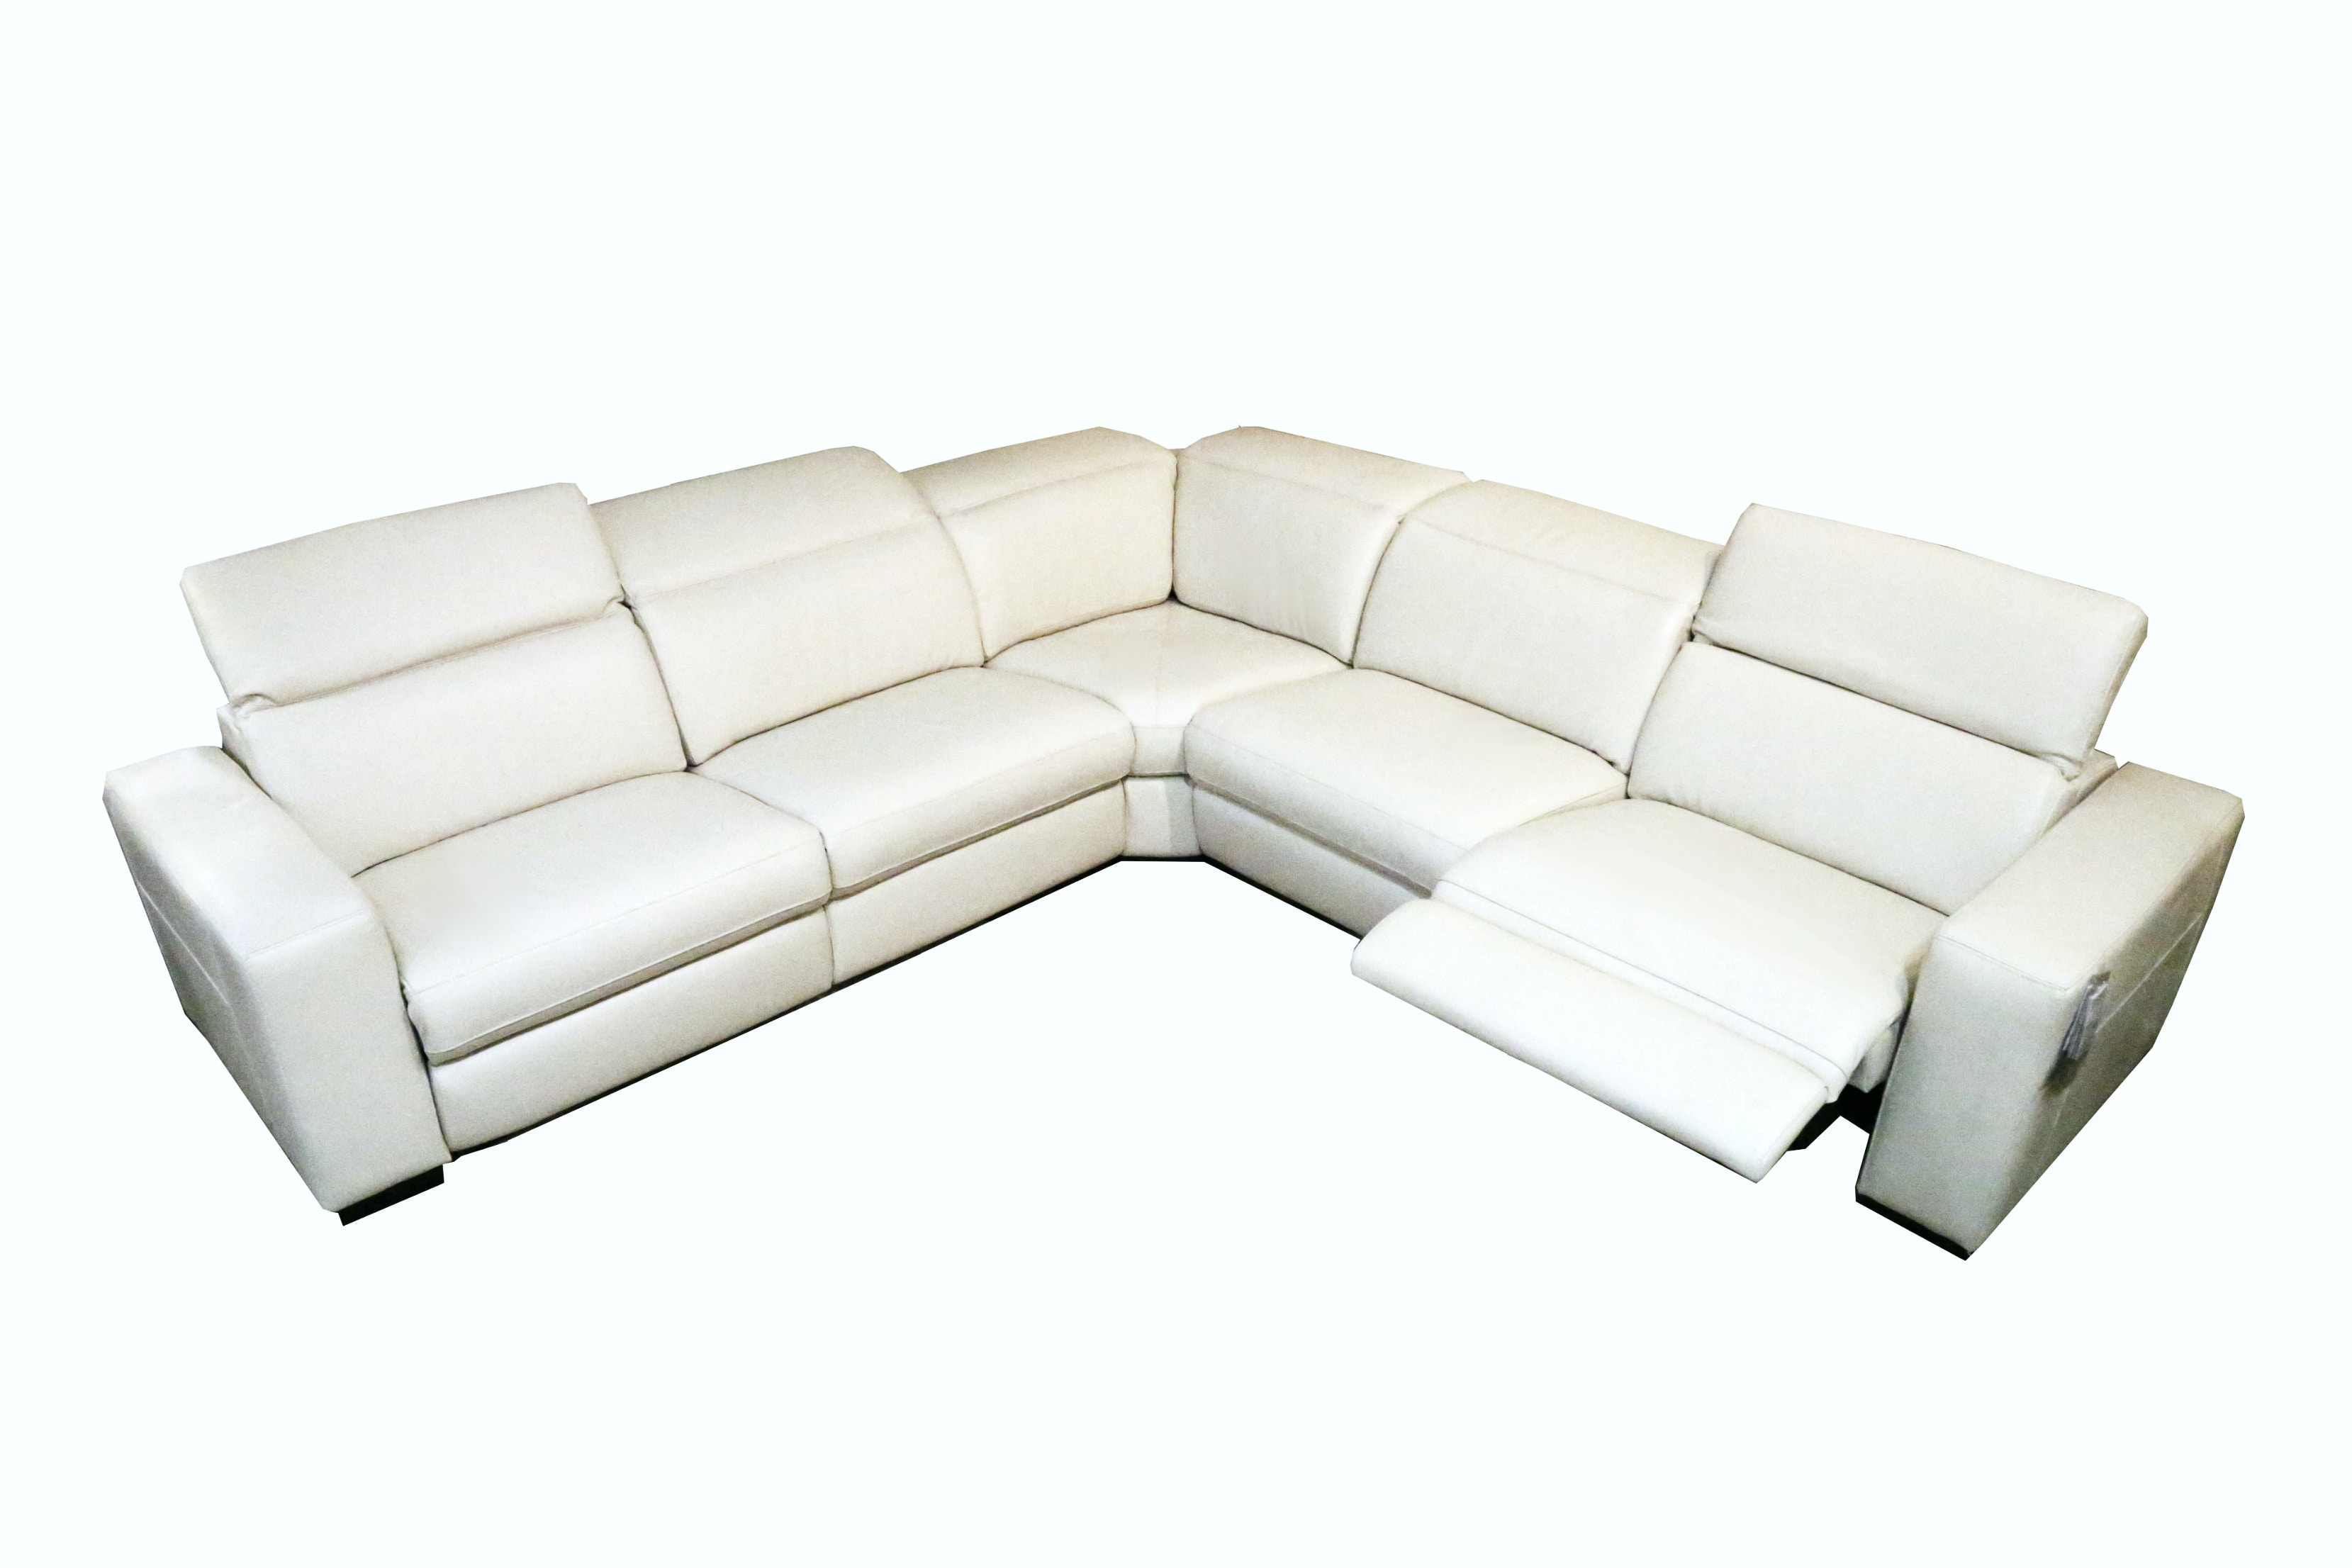 Stock Program ERIE POWER RECLINING SECTIONAL ABO229SERIES From Walter E.  Smithe Furniture + Design